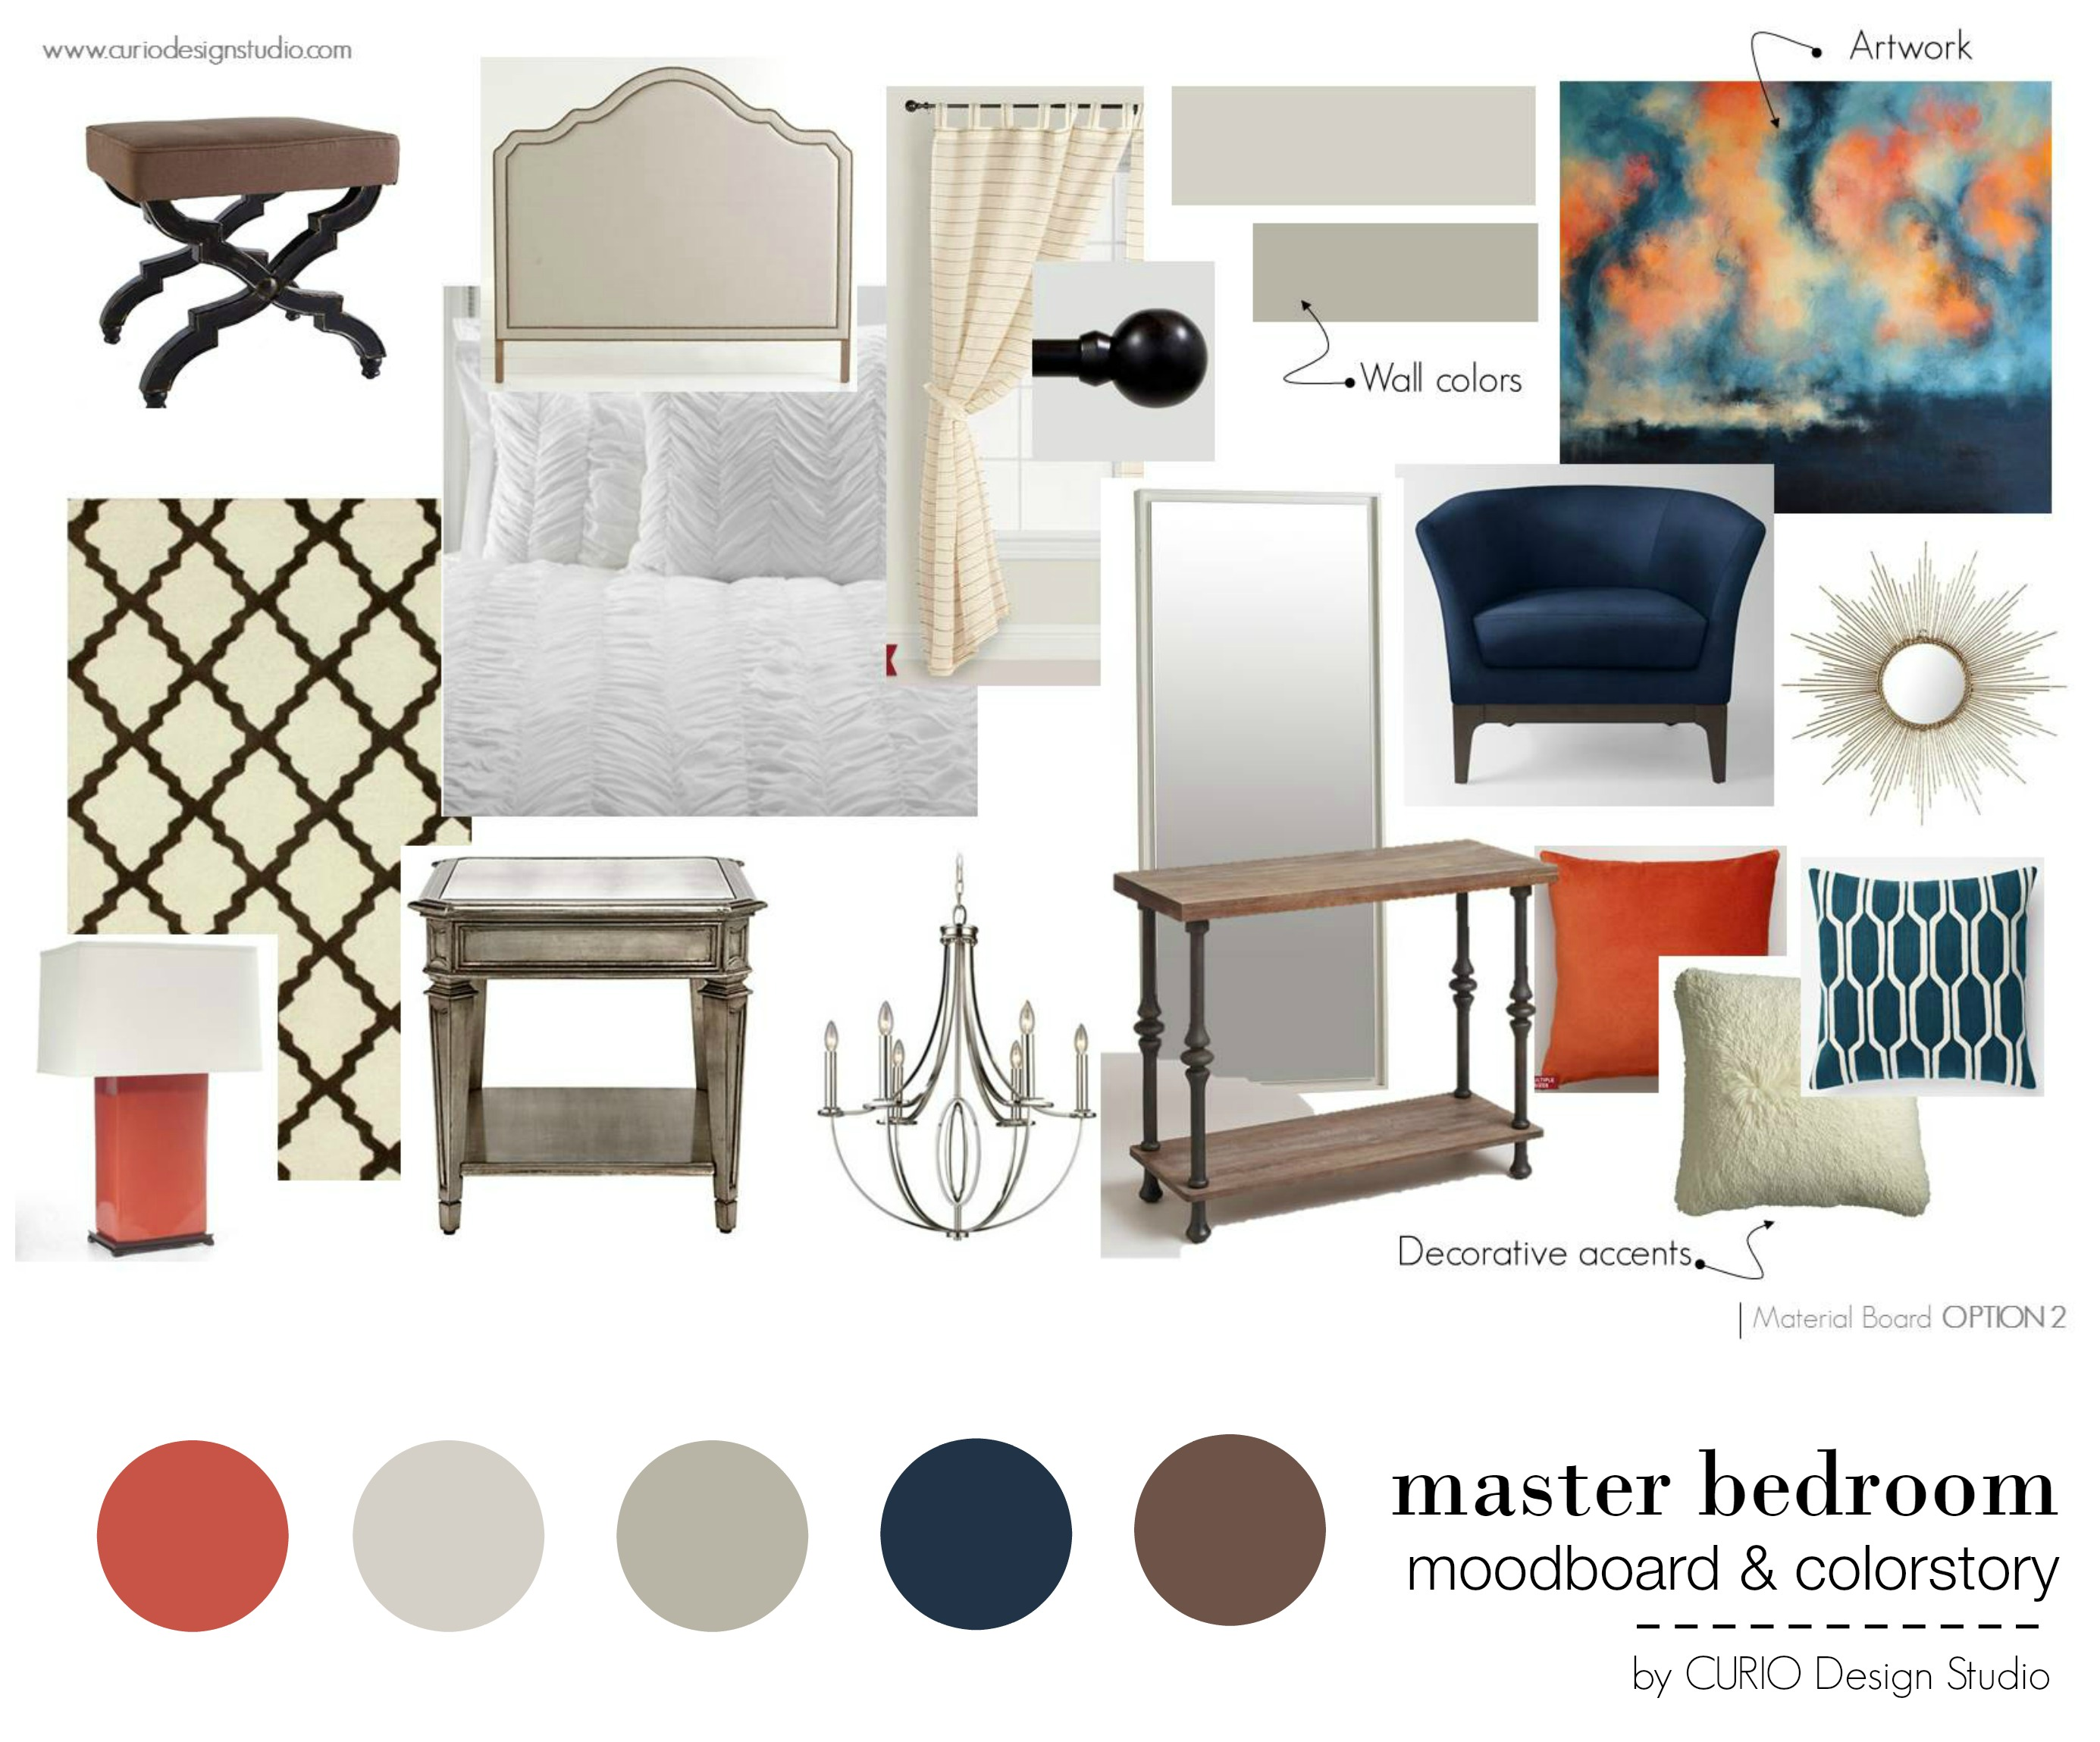 ORANGE & NAVY MASTER BEDROOM